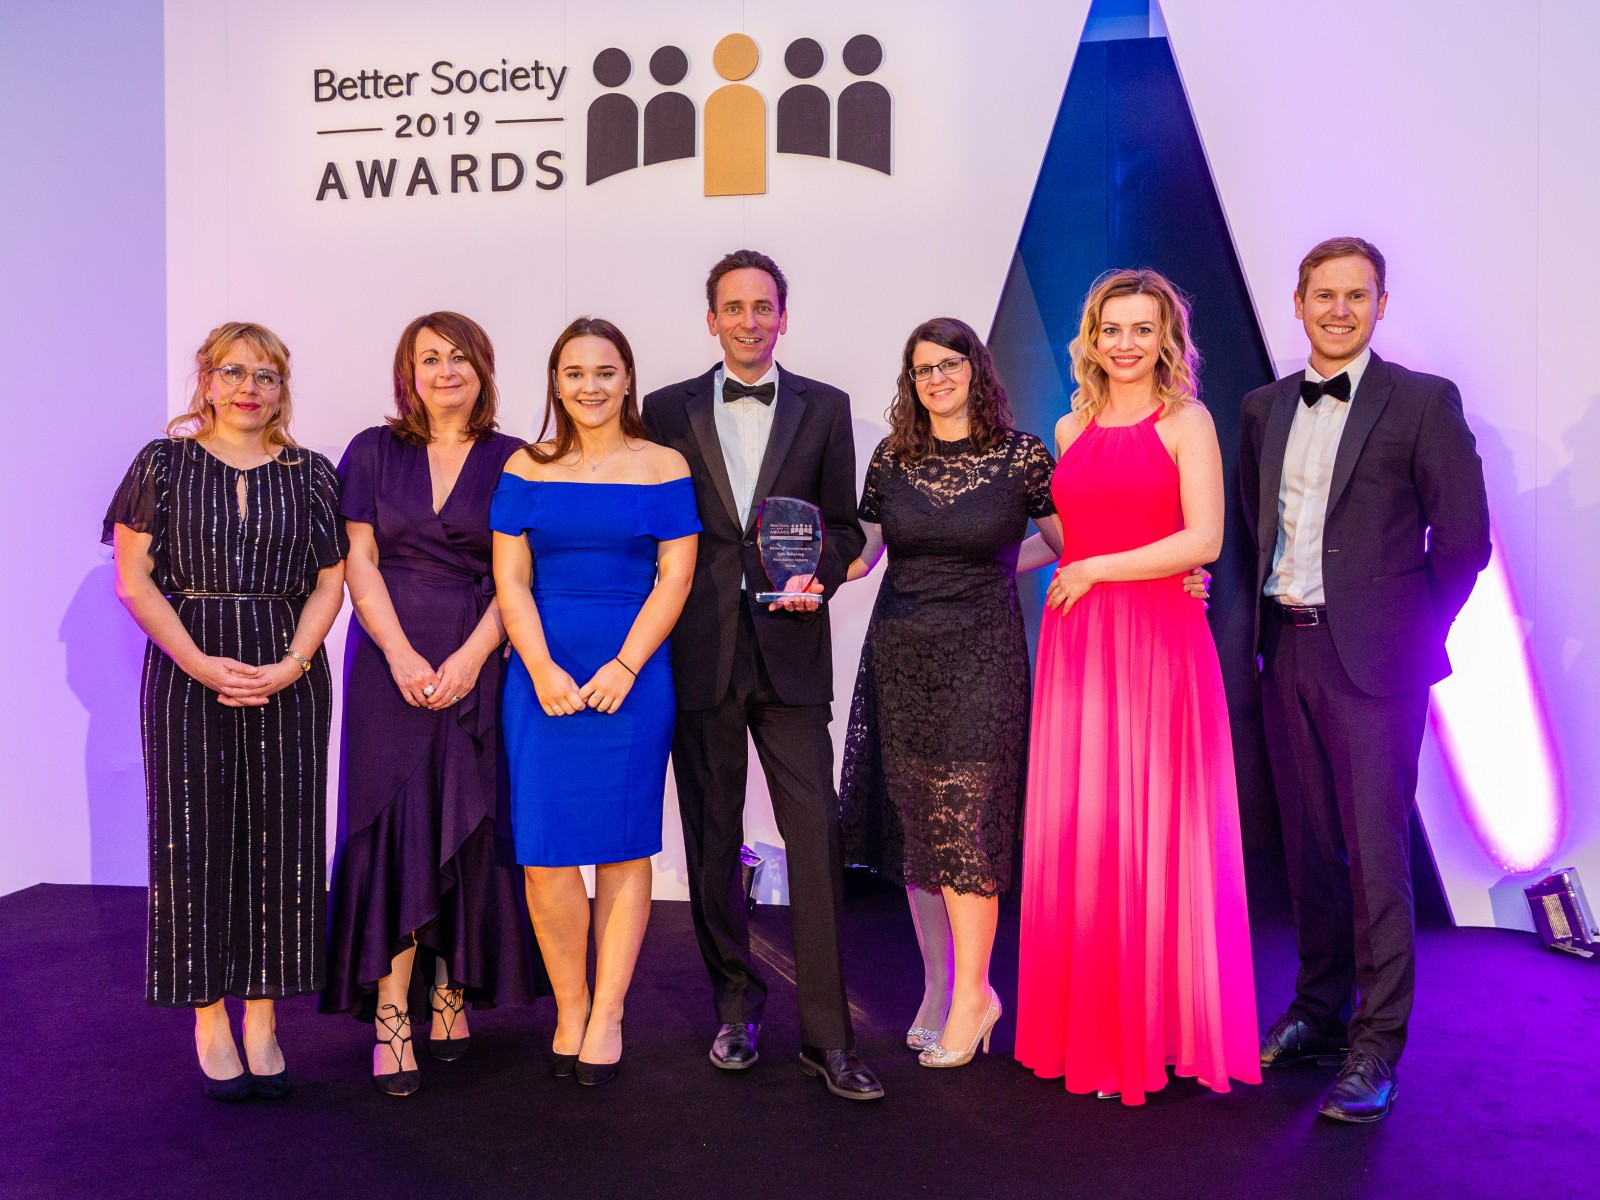 Representatives from MAG, including Stansted Airport's Head of Corporate Social Responsibility, Marcella M'Rabety (second in from the left), collect the National Commitment to Skills and Training prize at the 2019 Better Society Awards.